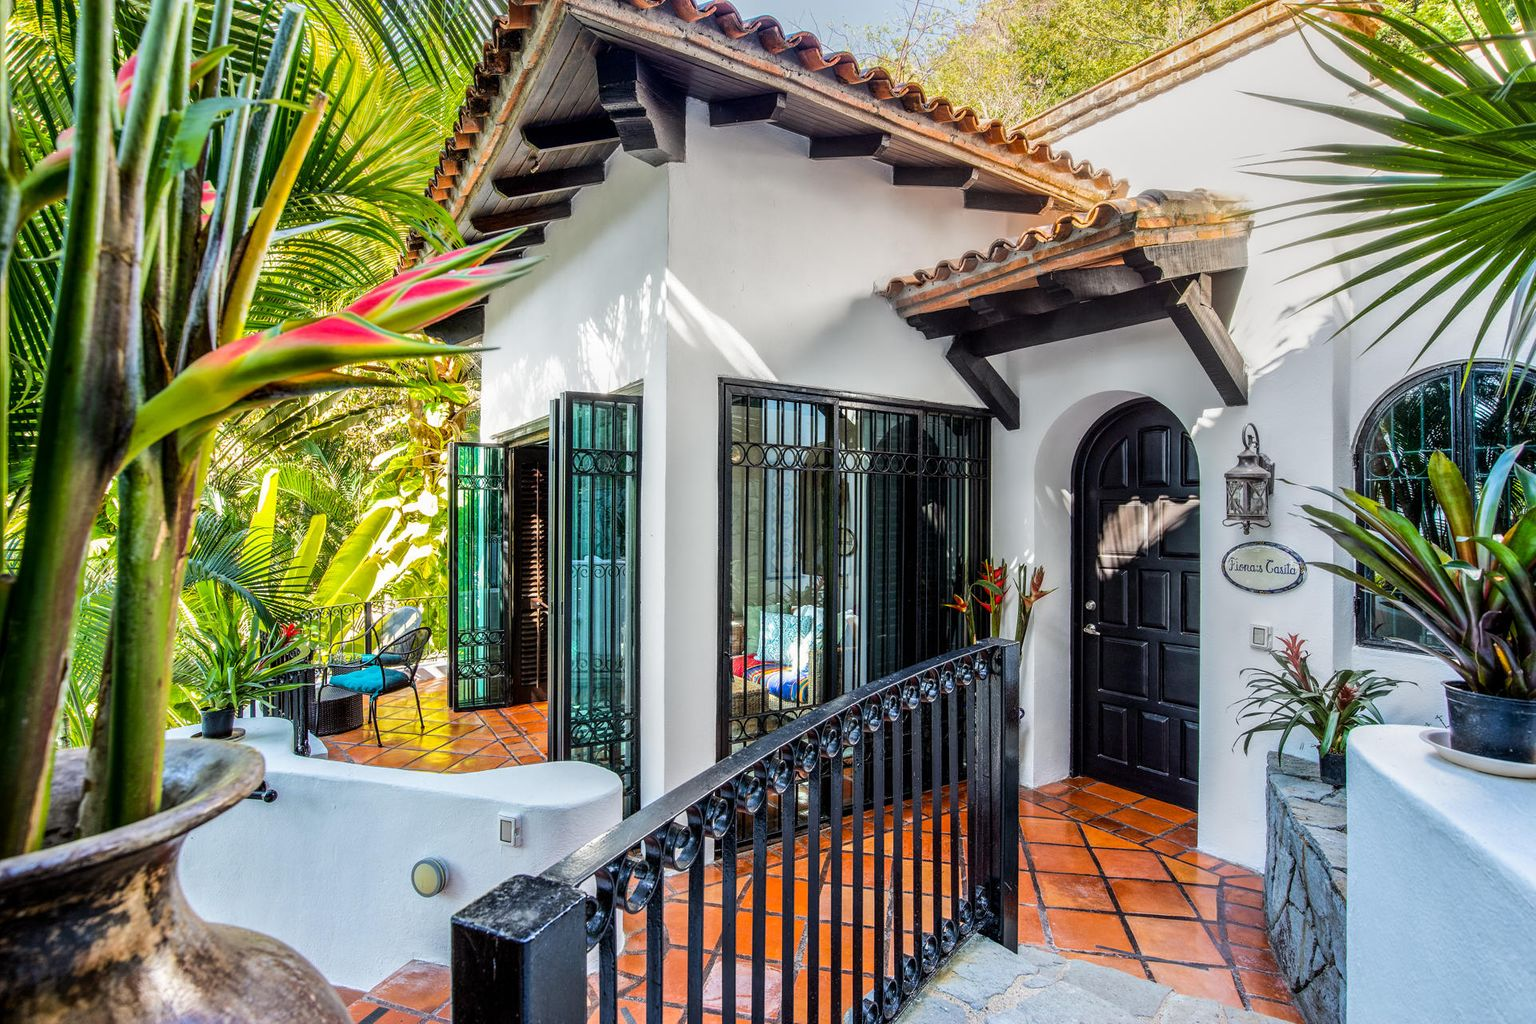 Large iron doors and plantation shutters open from the front and sides